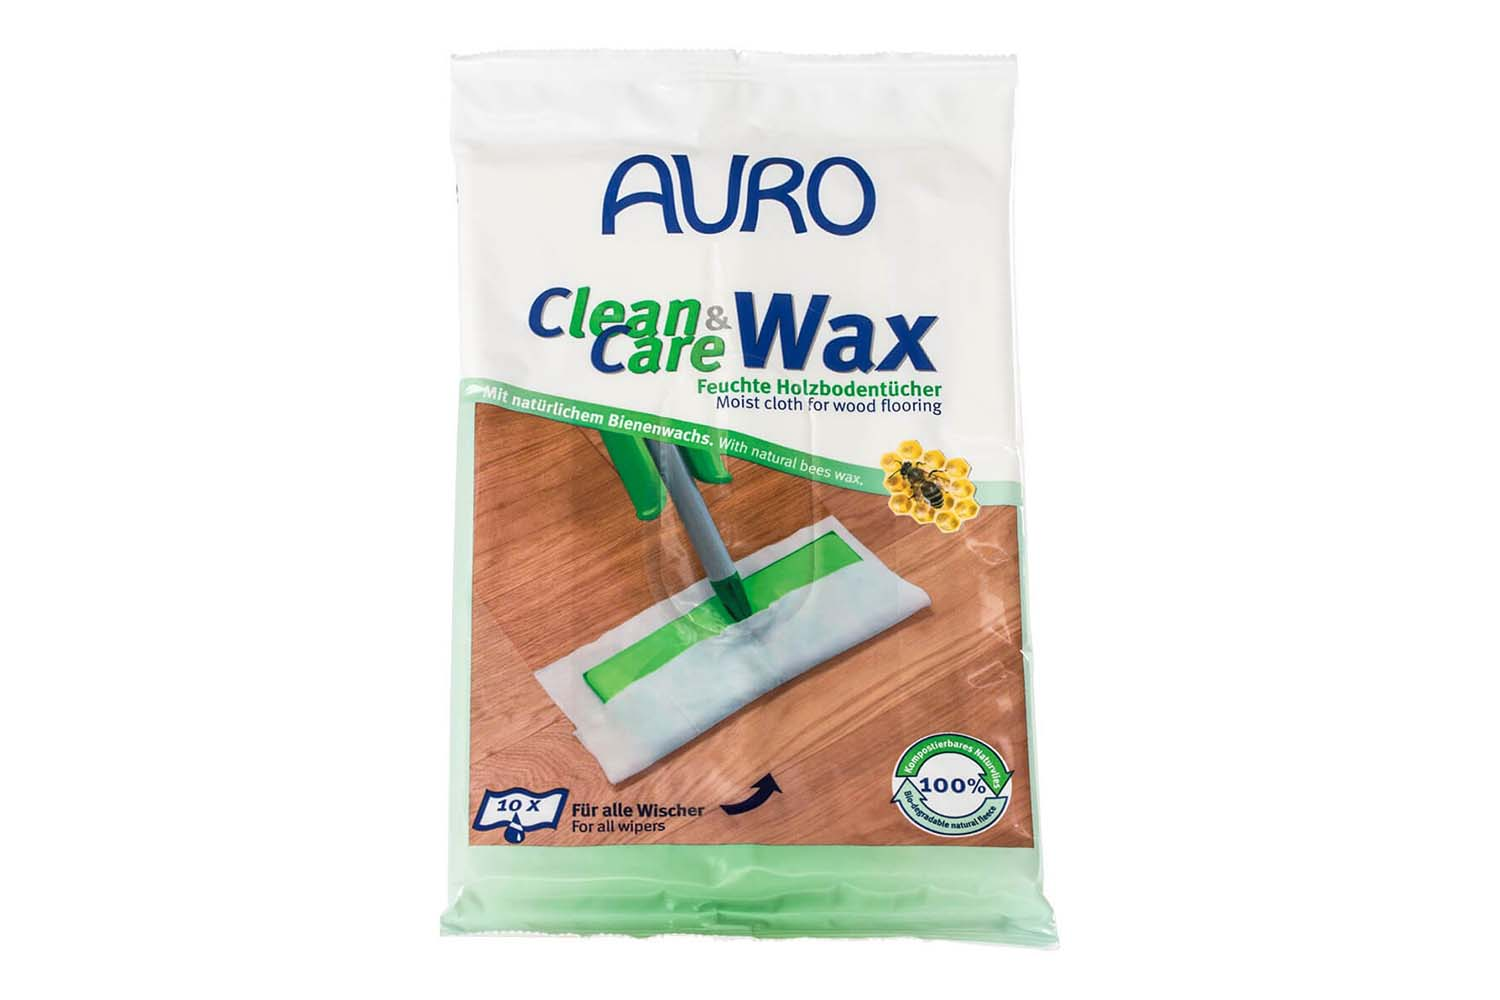 Auro Clean & Care Wax Nr. 680 - Feuchte Holzbodentücher